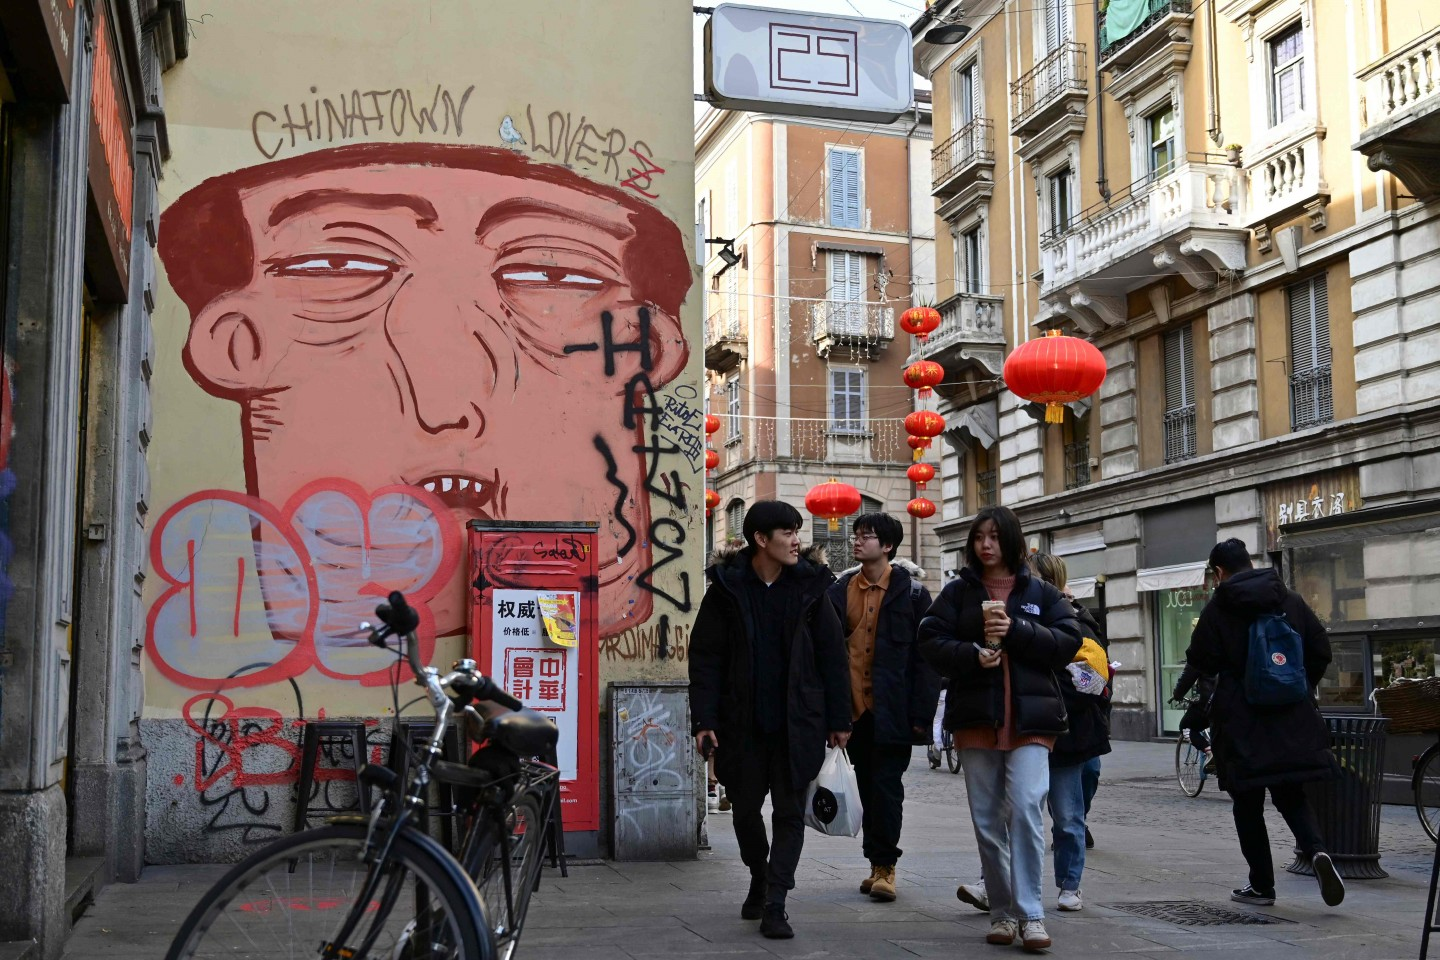 People pass by a mural depicting a chinese face in Via Paolo Sarpi, the commercial street of the chinese district of Milan on 30 January 2020. (Miguel Medina/AFP)